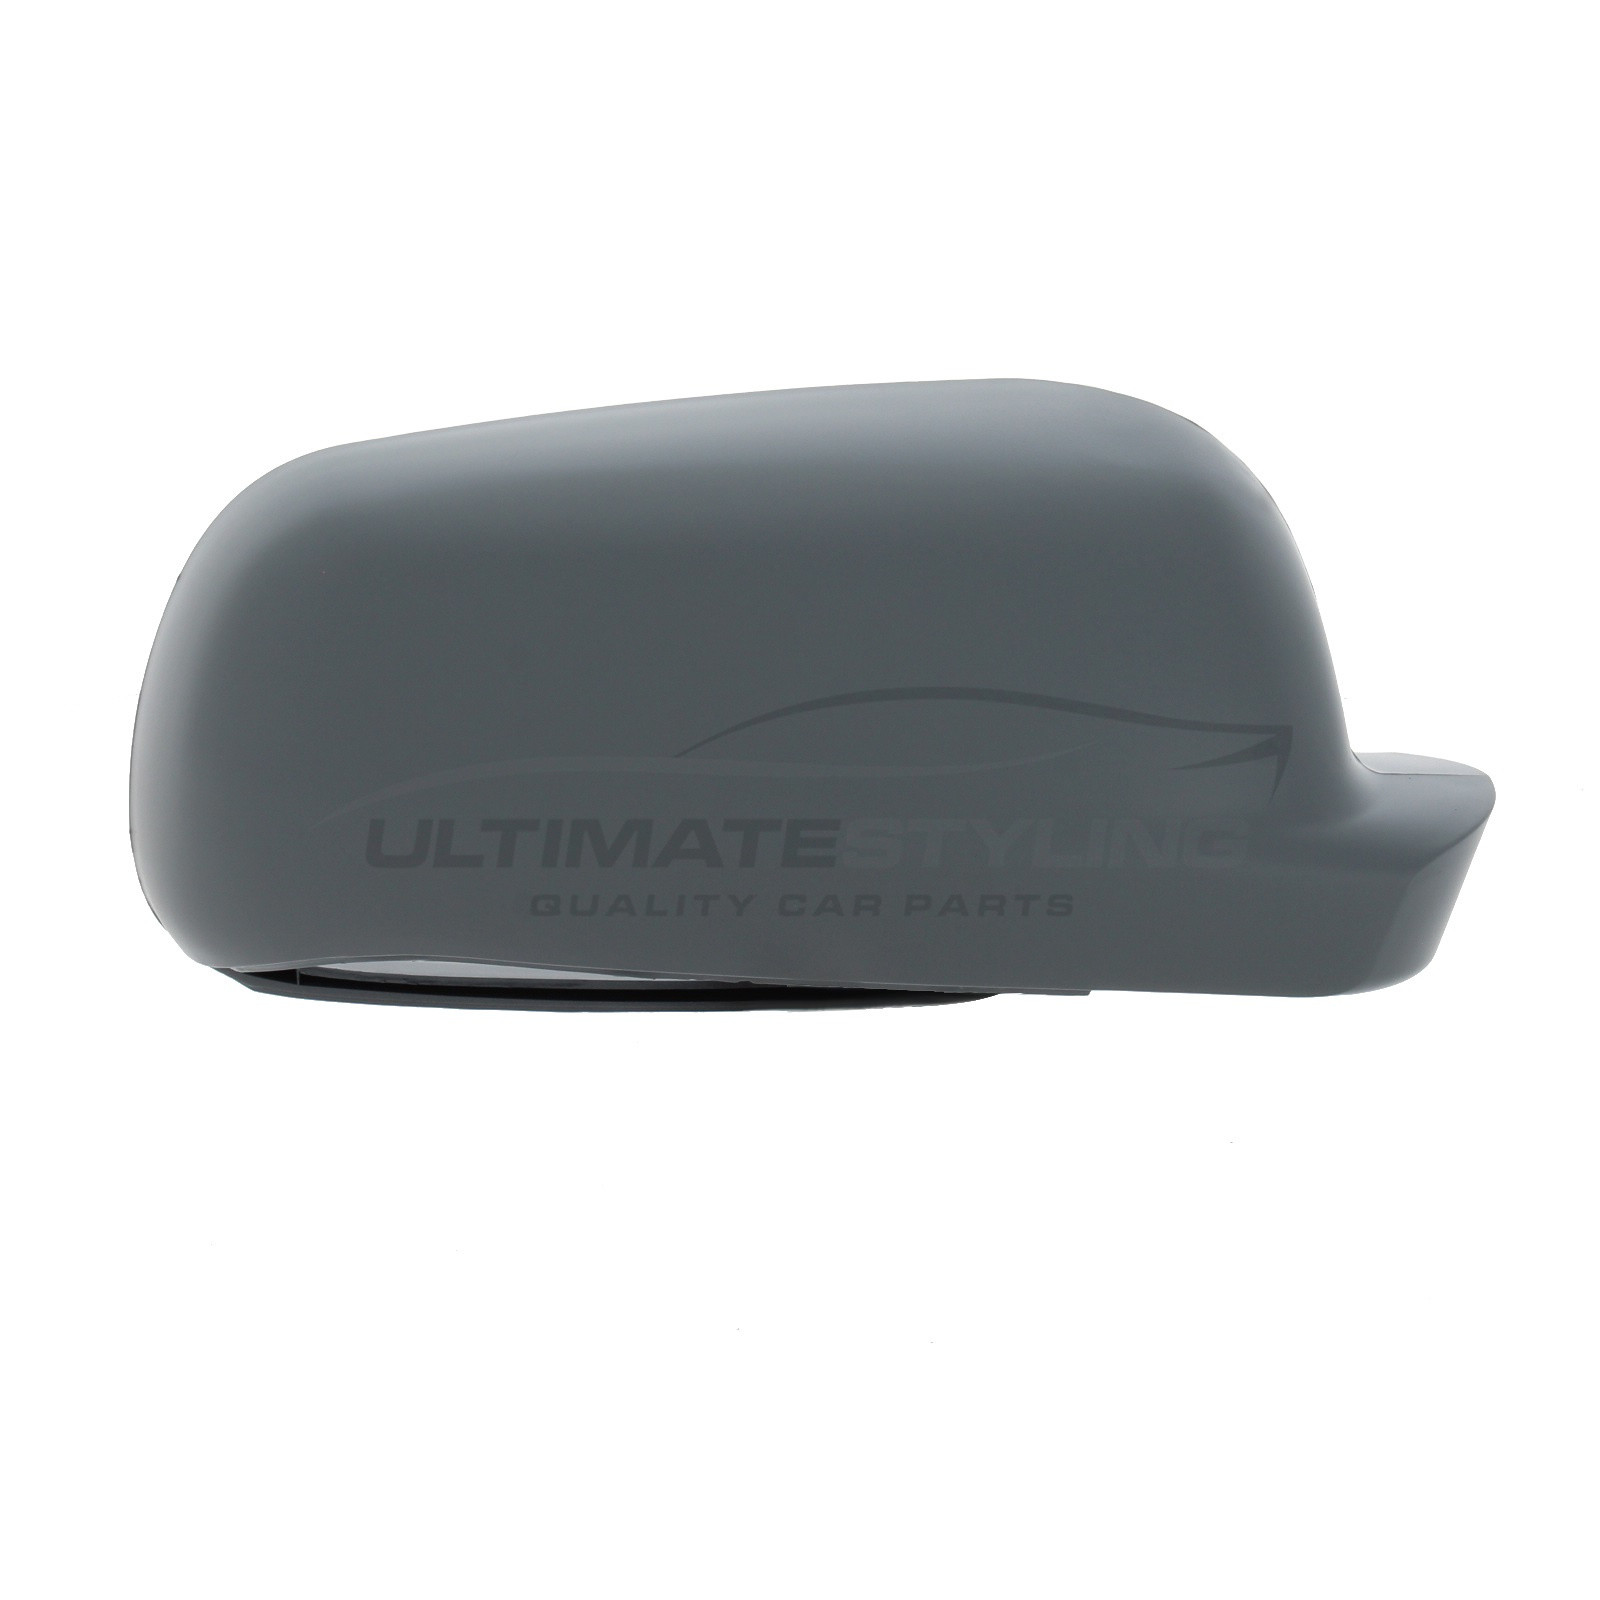 Seat Leon 1999-2003 Driver side Mirror Cover Replacement Right Primed Wing cap